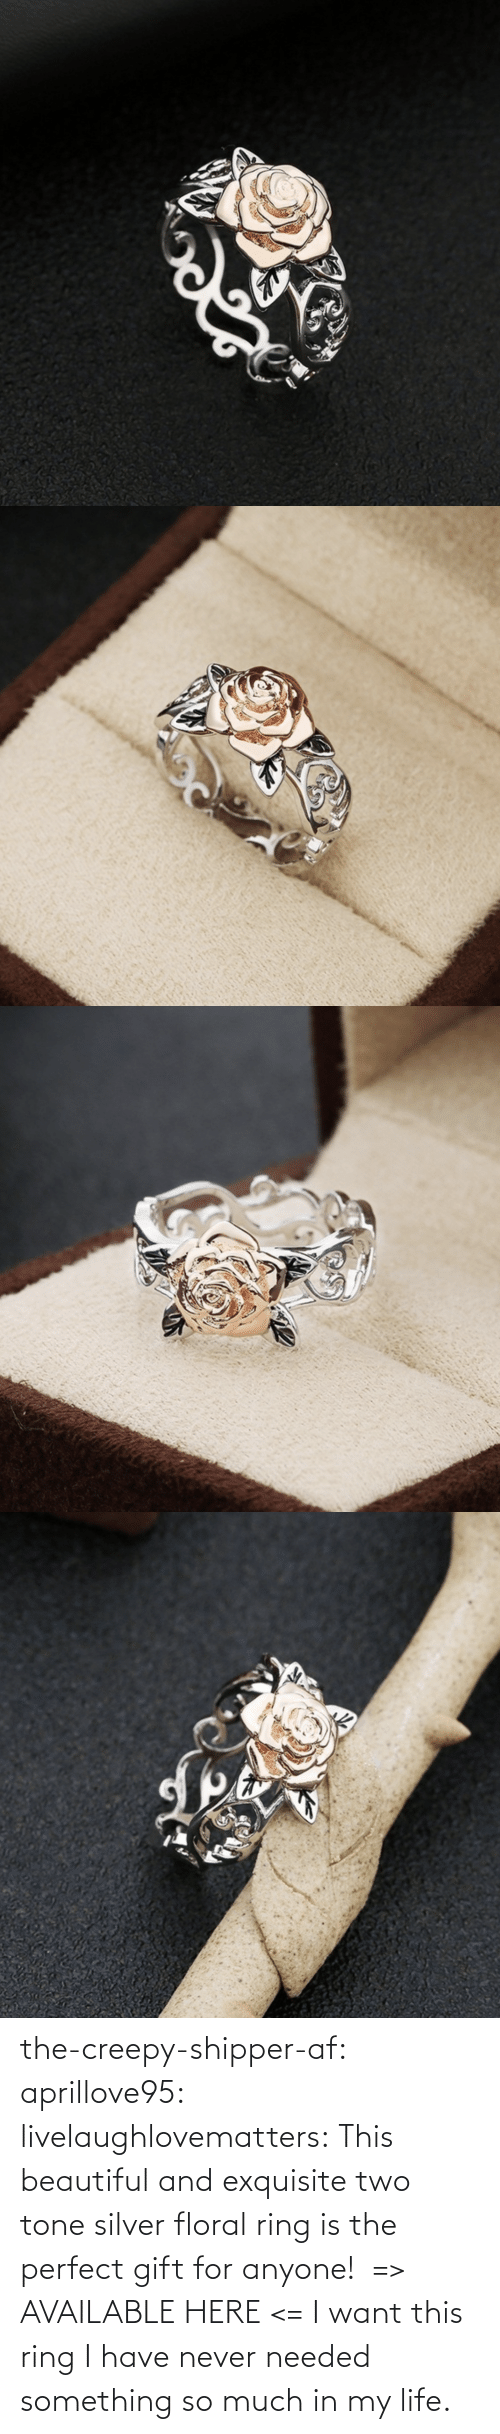 In My: the-creepy-shipper-af: aprillove95:  livelaughlovematters:  This beautiful and exquisite two tone silver floral ring is the perfect gift for anyone!  => AVAILABLE HERE <=    I want this ring   I have never needed something so much in my life.